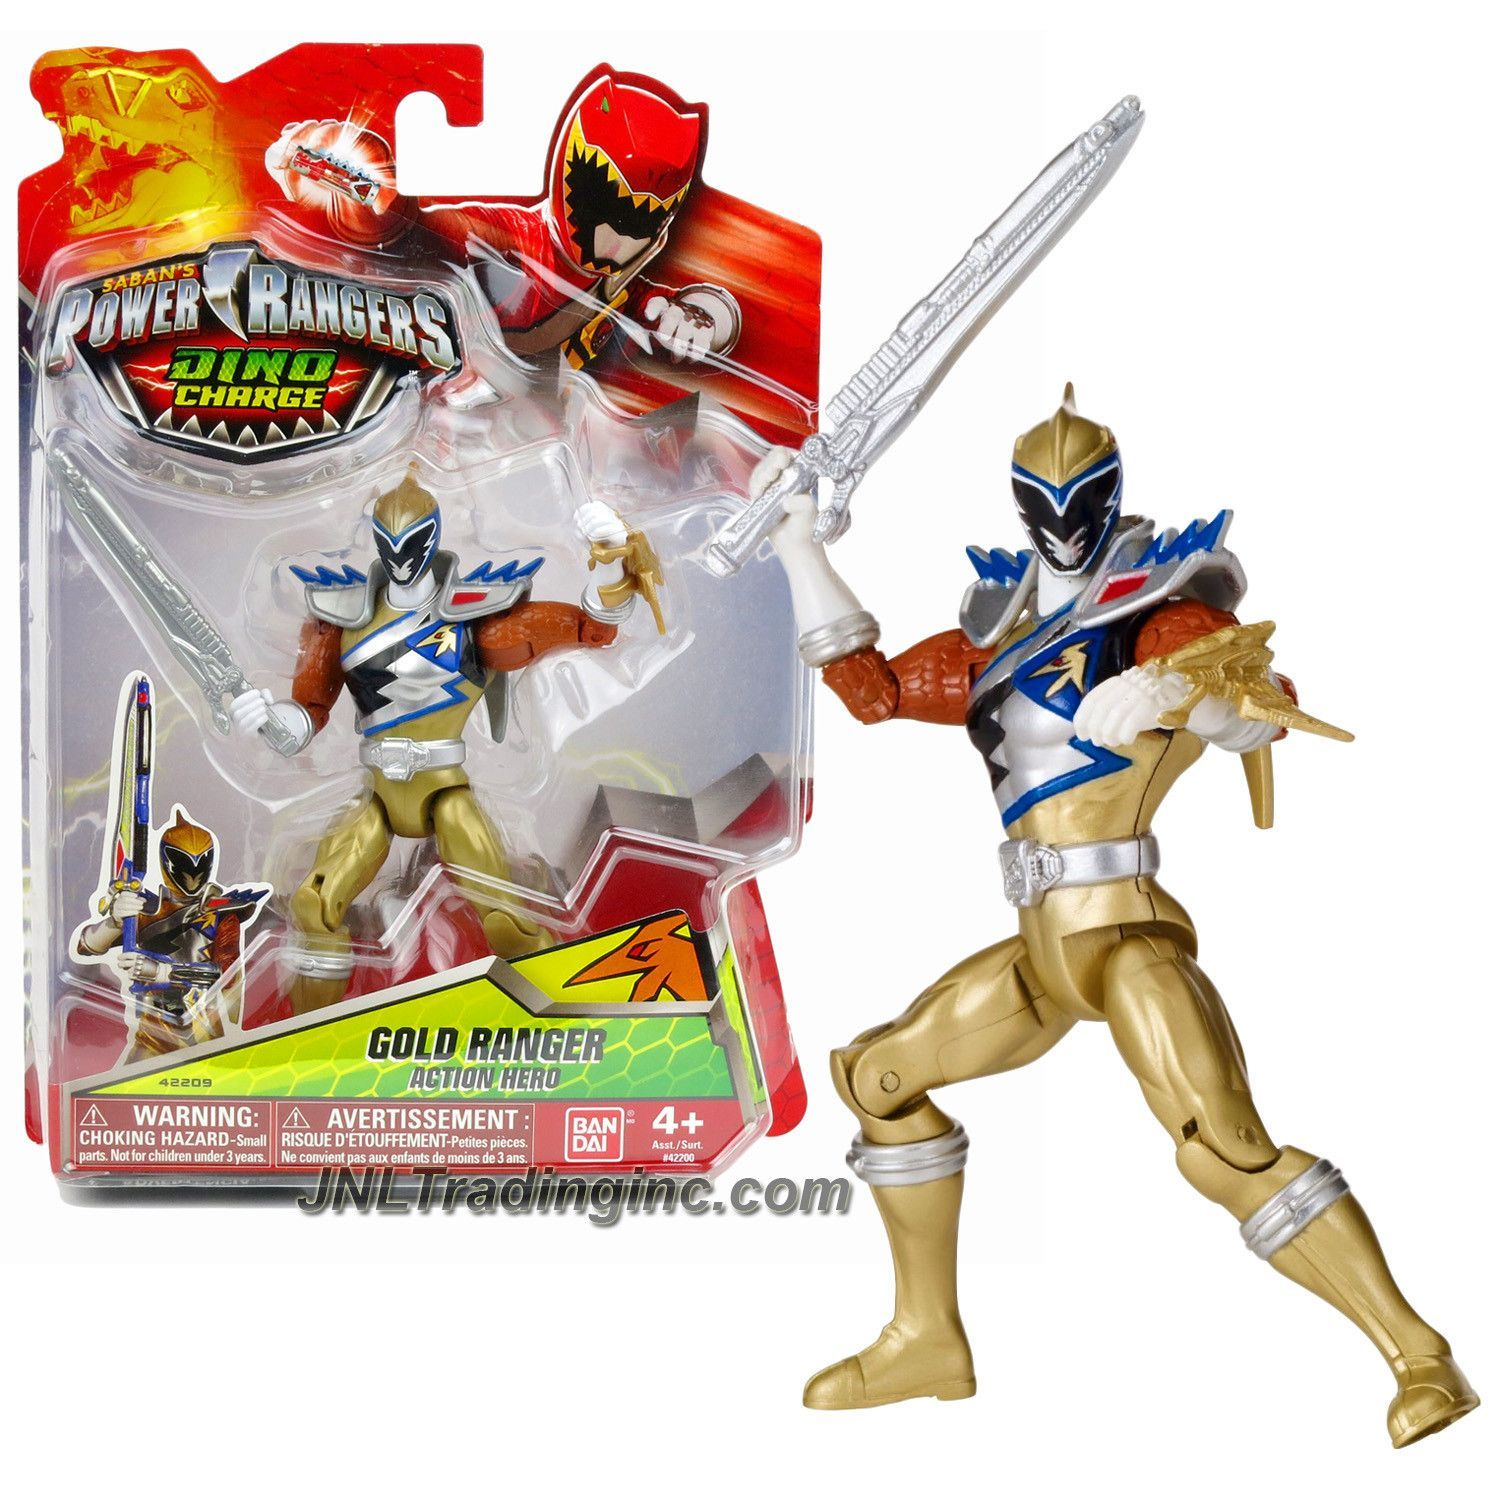 Beau dessin colorier power rangers dino charge - Dessin power rangers dino charge ...